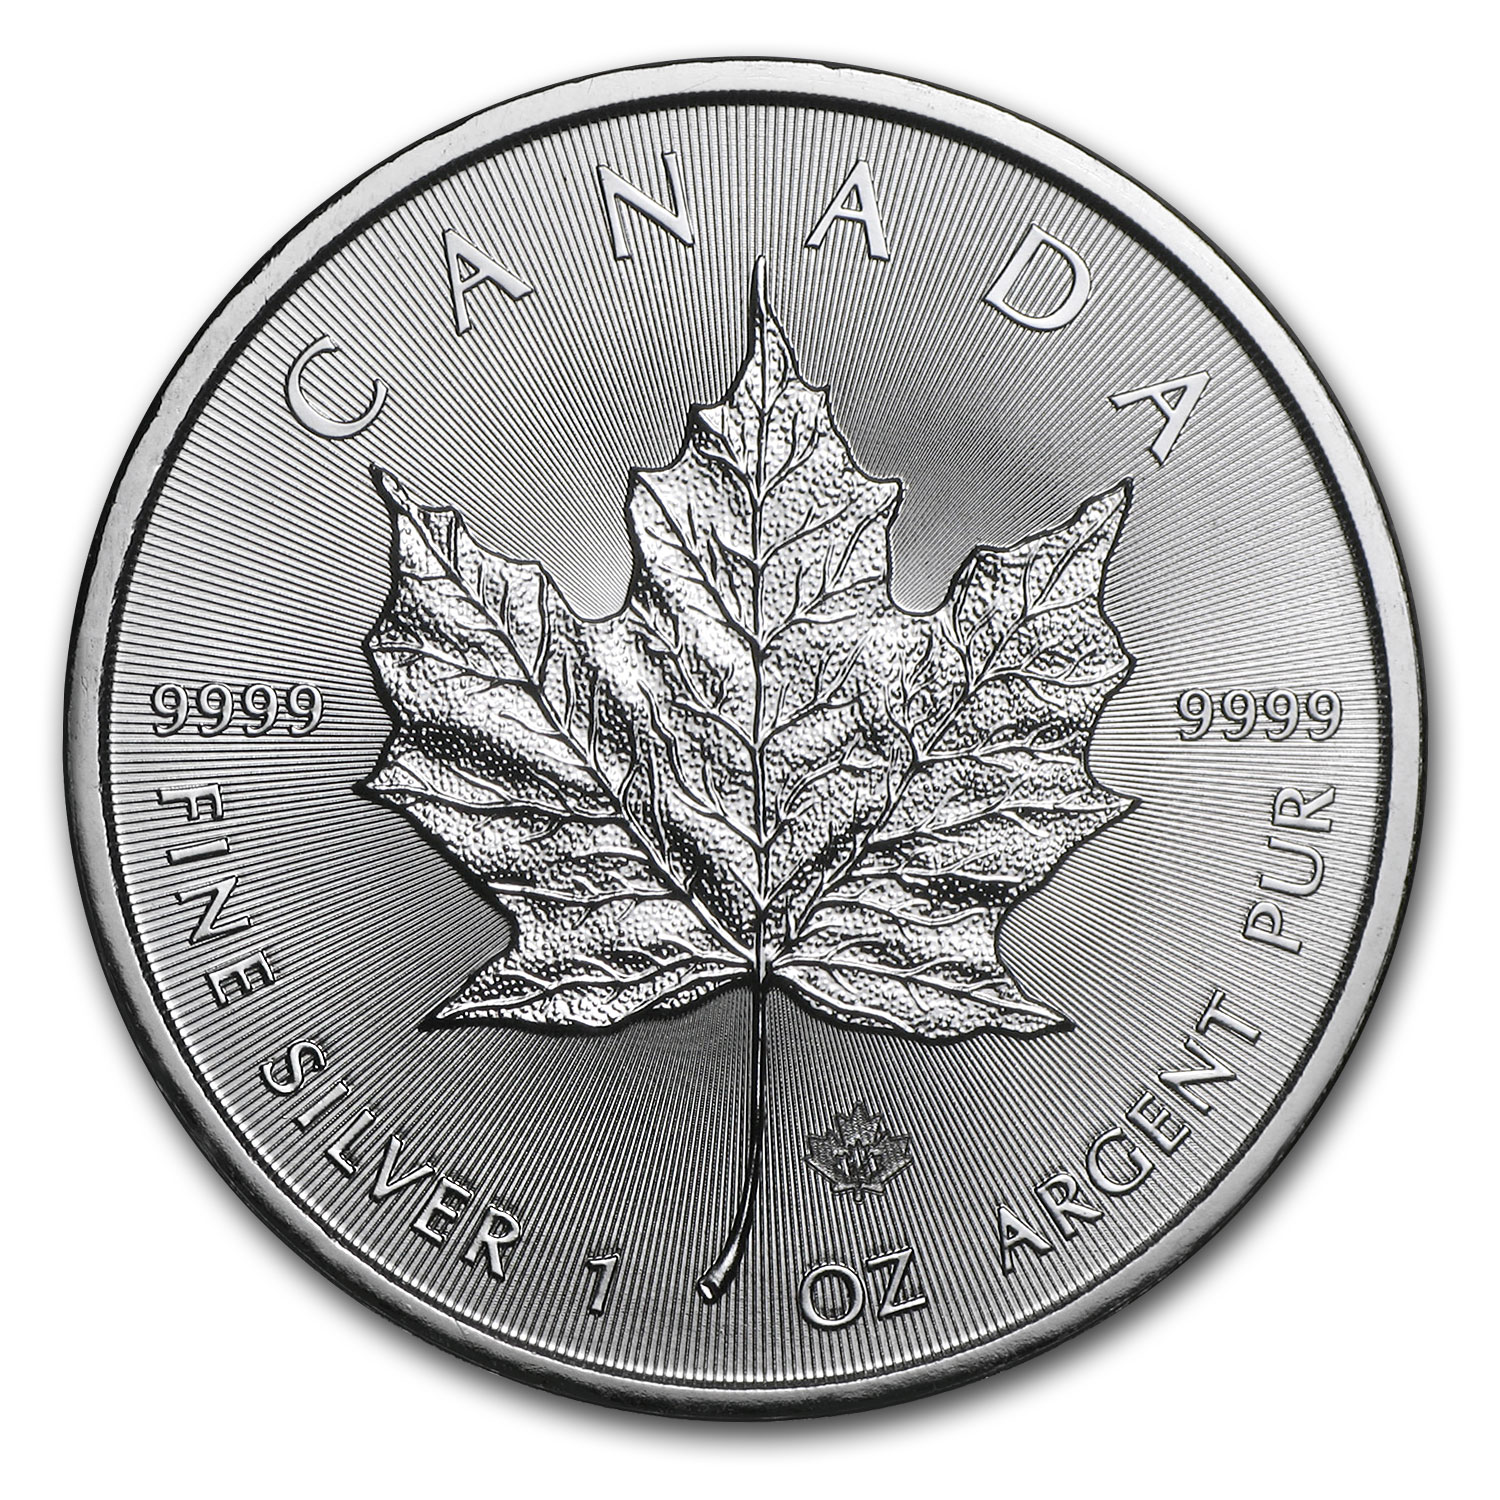 2014 Canada 1 oz Silver Maple Leaf BU